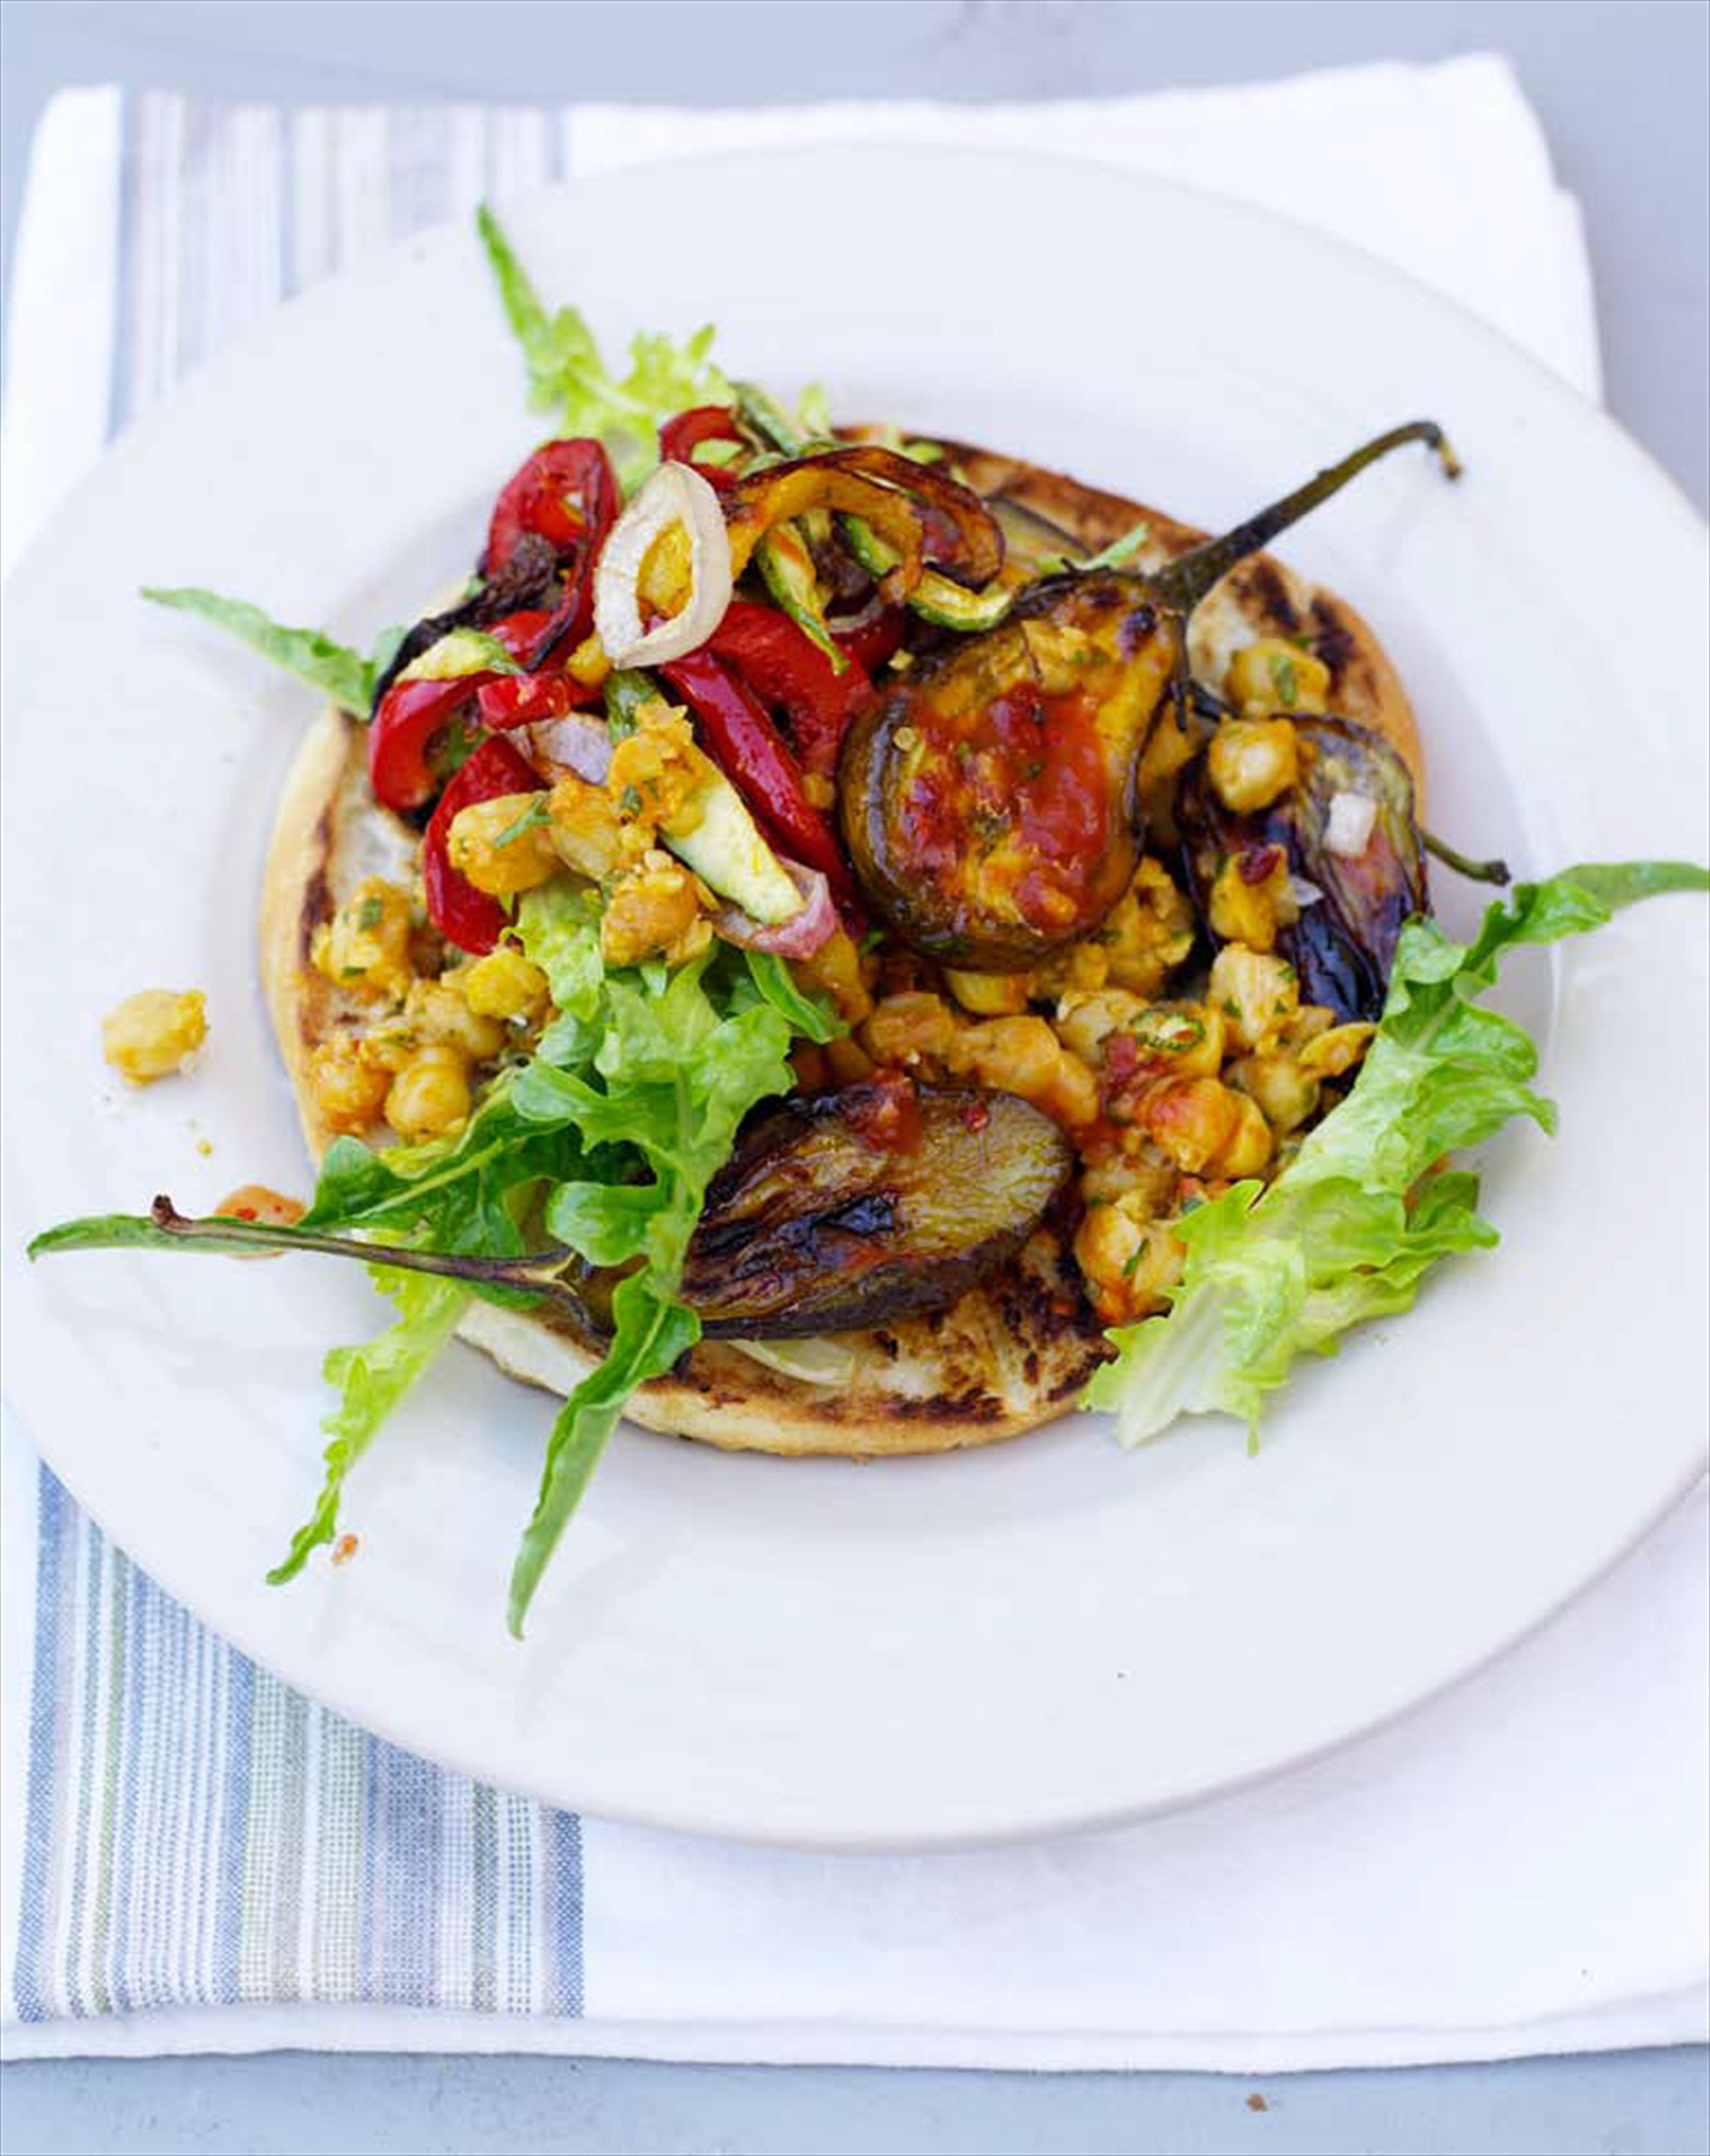 Spicy grilled vegetable rolls with chickpea salad